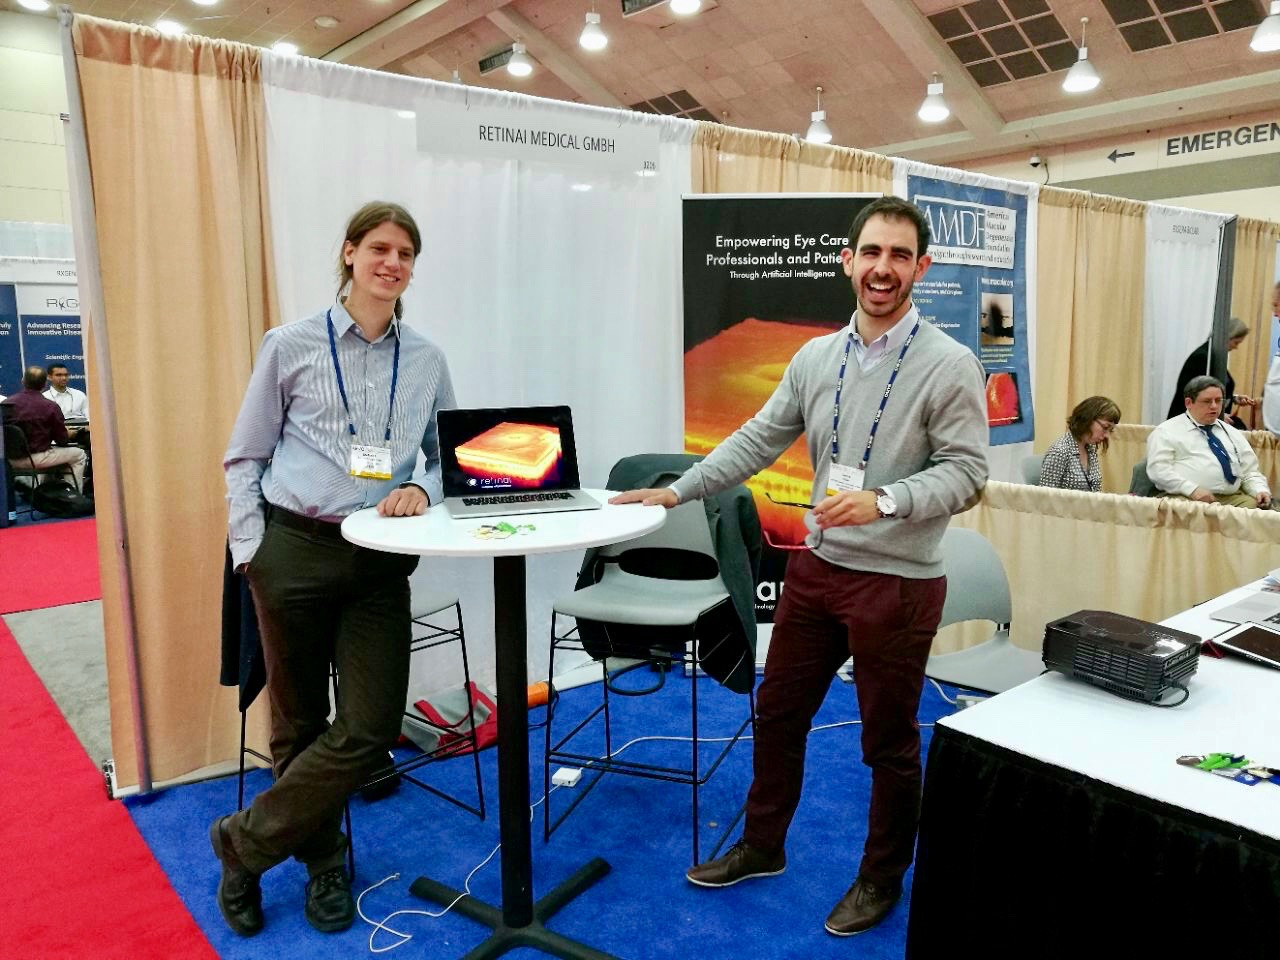 ARVO 2017, Baltimore [May'17] - Our team members travelled to the American Research in Vision and Ophthalmology (ARVO) conference 2017, in Baltimore, to present their products in the field of OCT image analisys and Fundus Imaging.